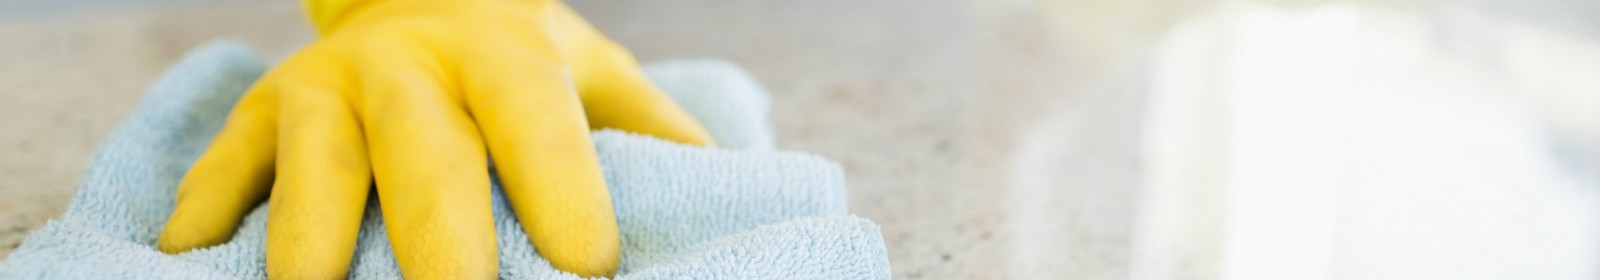 5 ways to deep clean your home